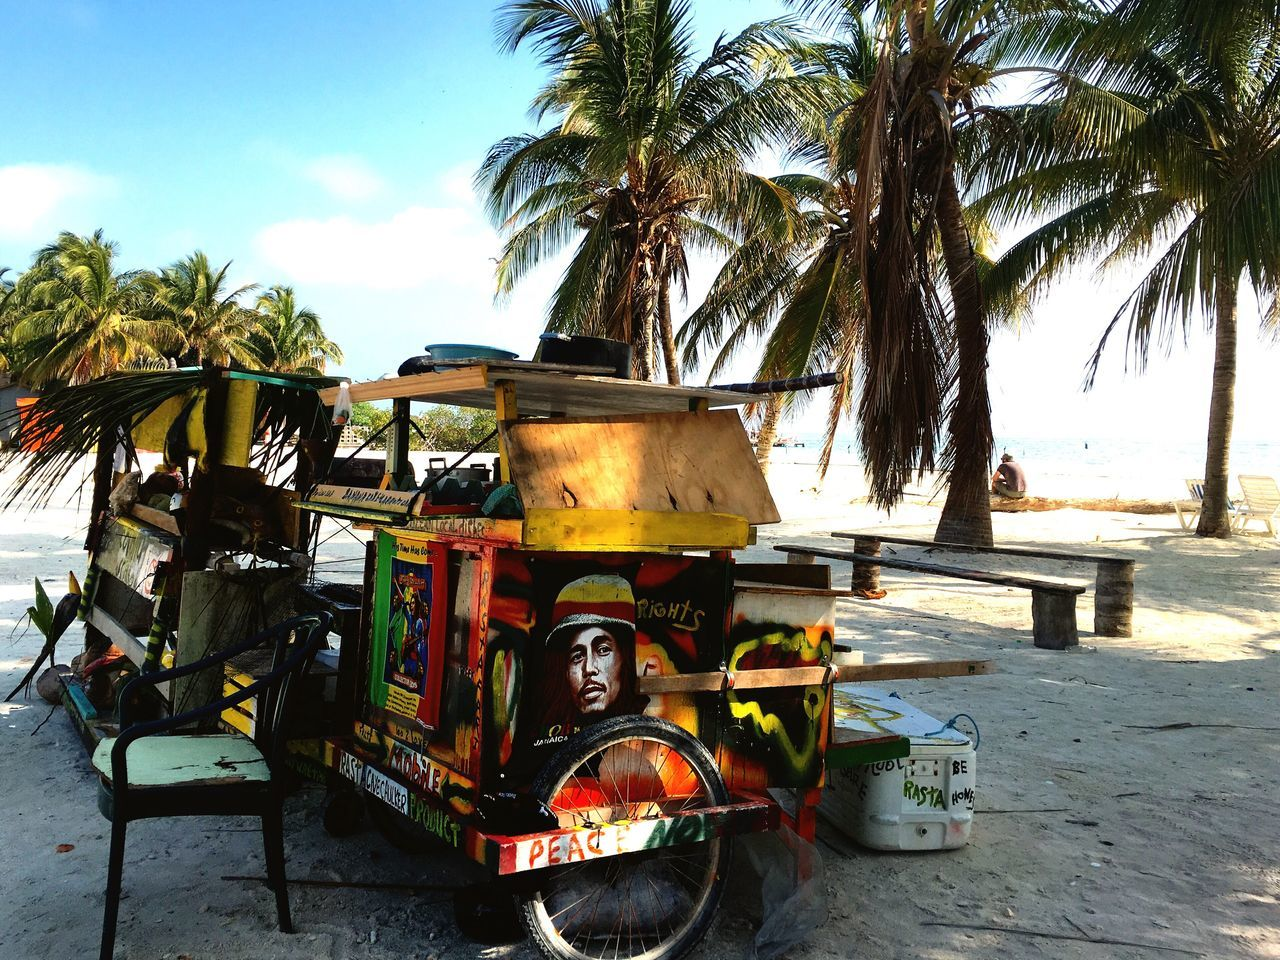 Rasta coconut wagon Just Taking Pictures I LOVE PHOTOGRAPHY Taking Photos Go Slow Getting Inspired Caye Caulker Belize  Just Hanging Out On The Road ! Island Life